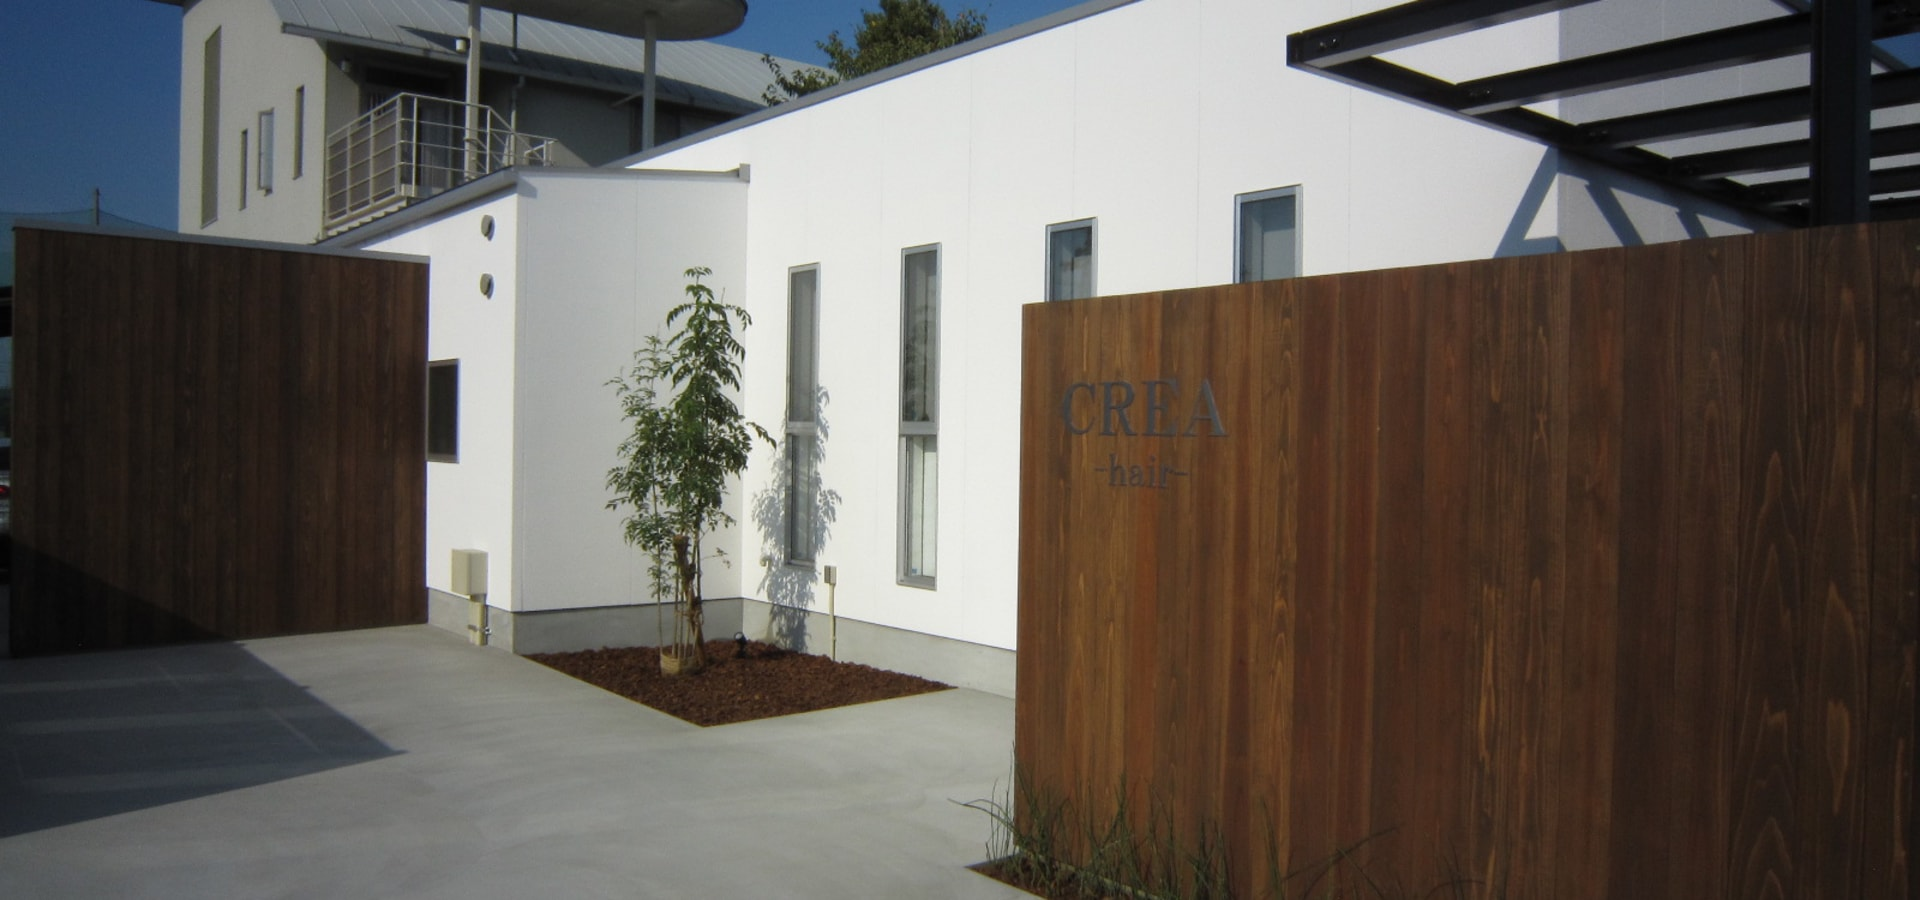 Arata Architect Studio